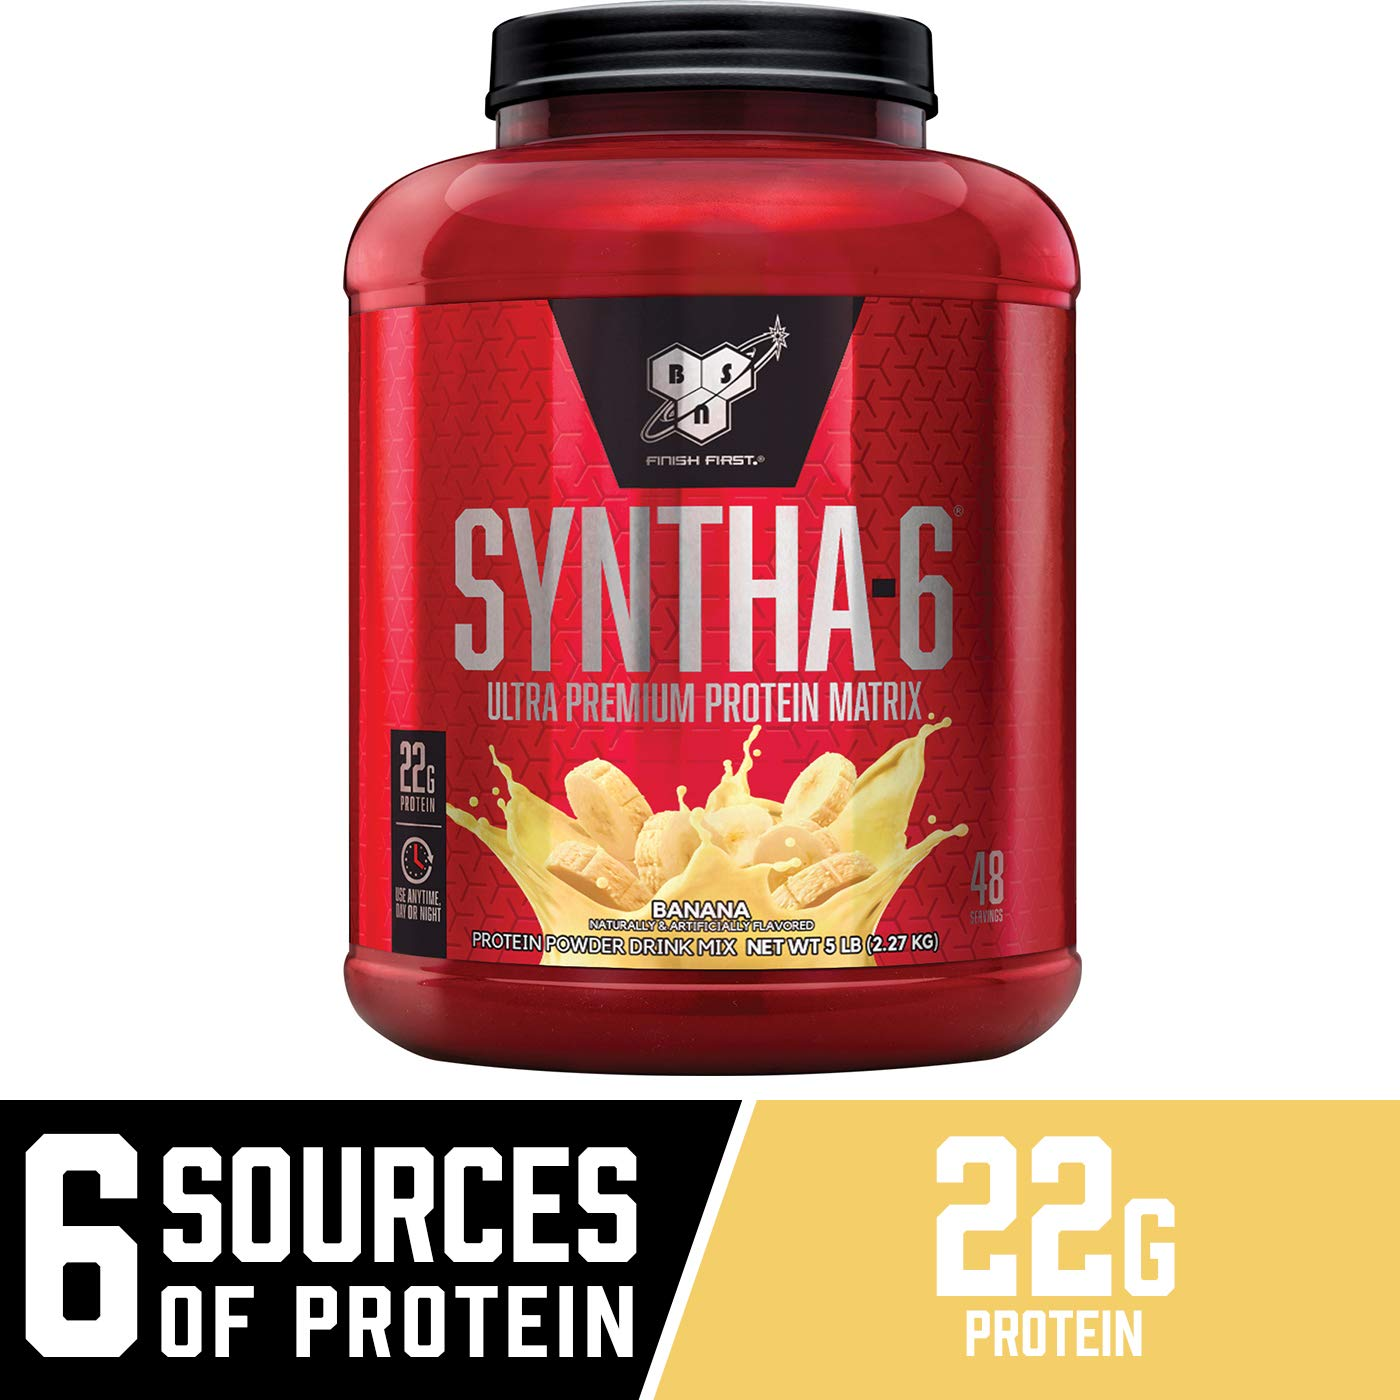 BSN SYNTHA-6 Whey Protein Powder, Micellar Casein, Milk Protein Isolate Powder, Banana, 48 Servings (Package May Vary) by BSN